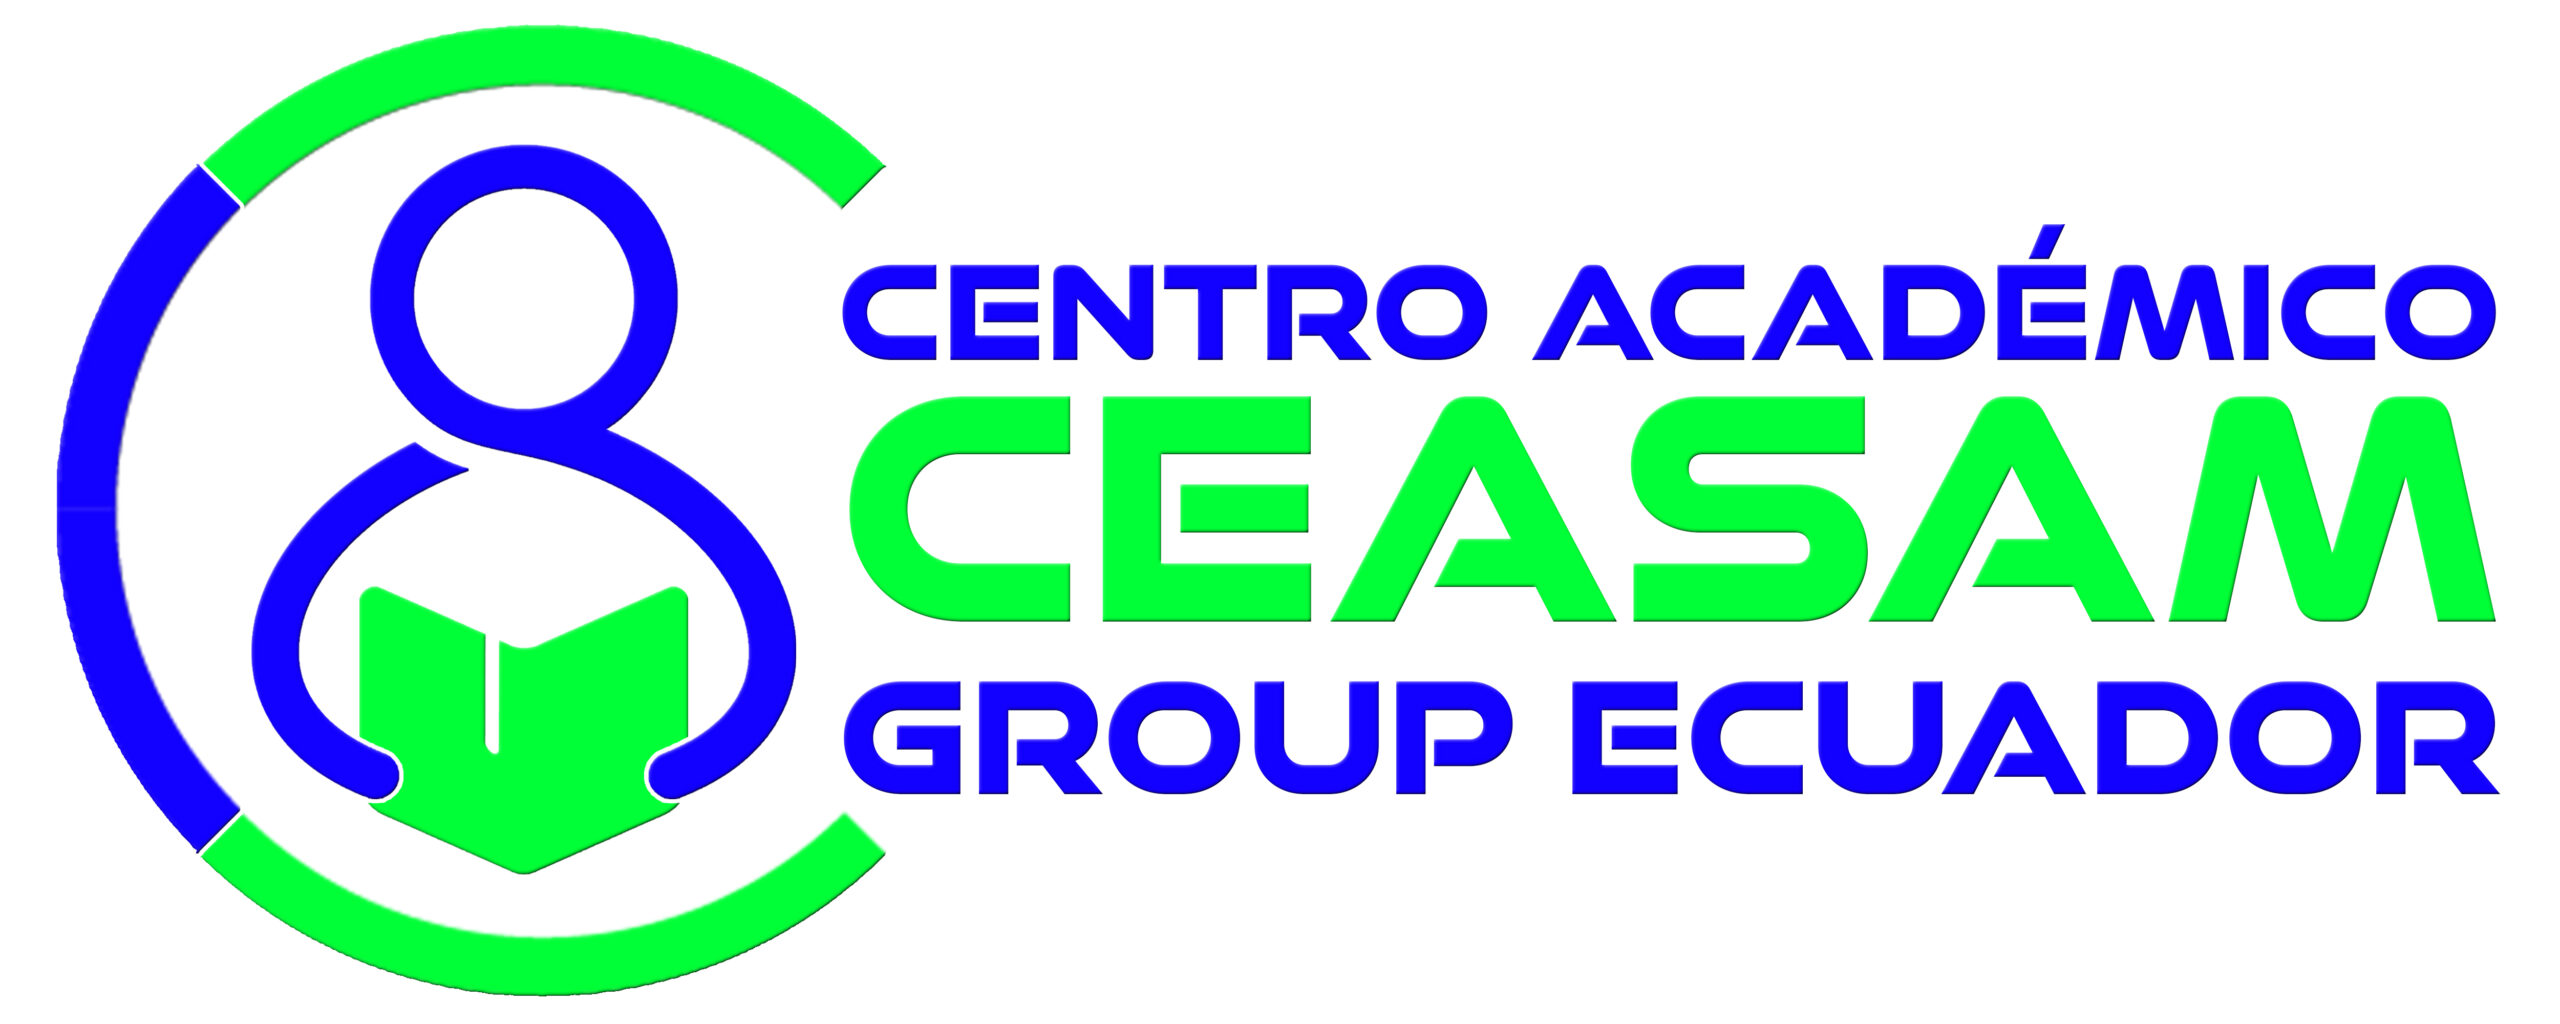 Ceasam Group